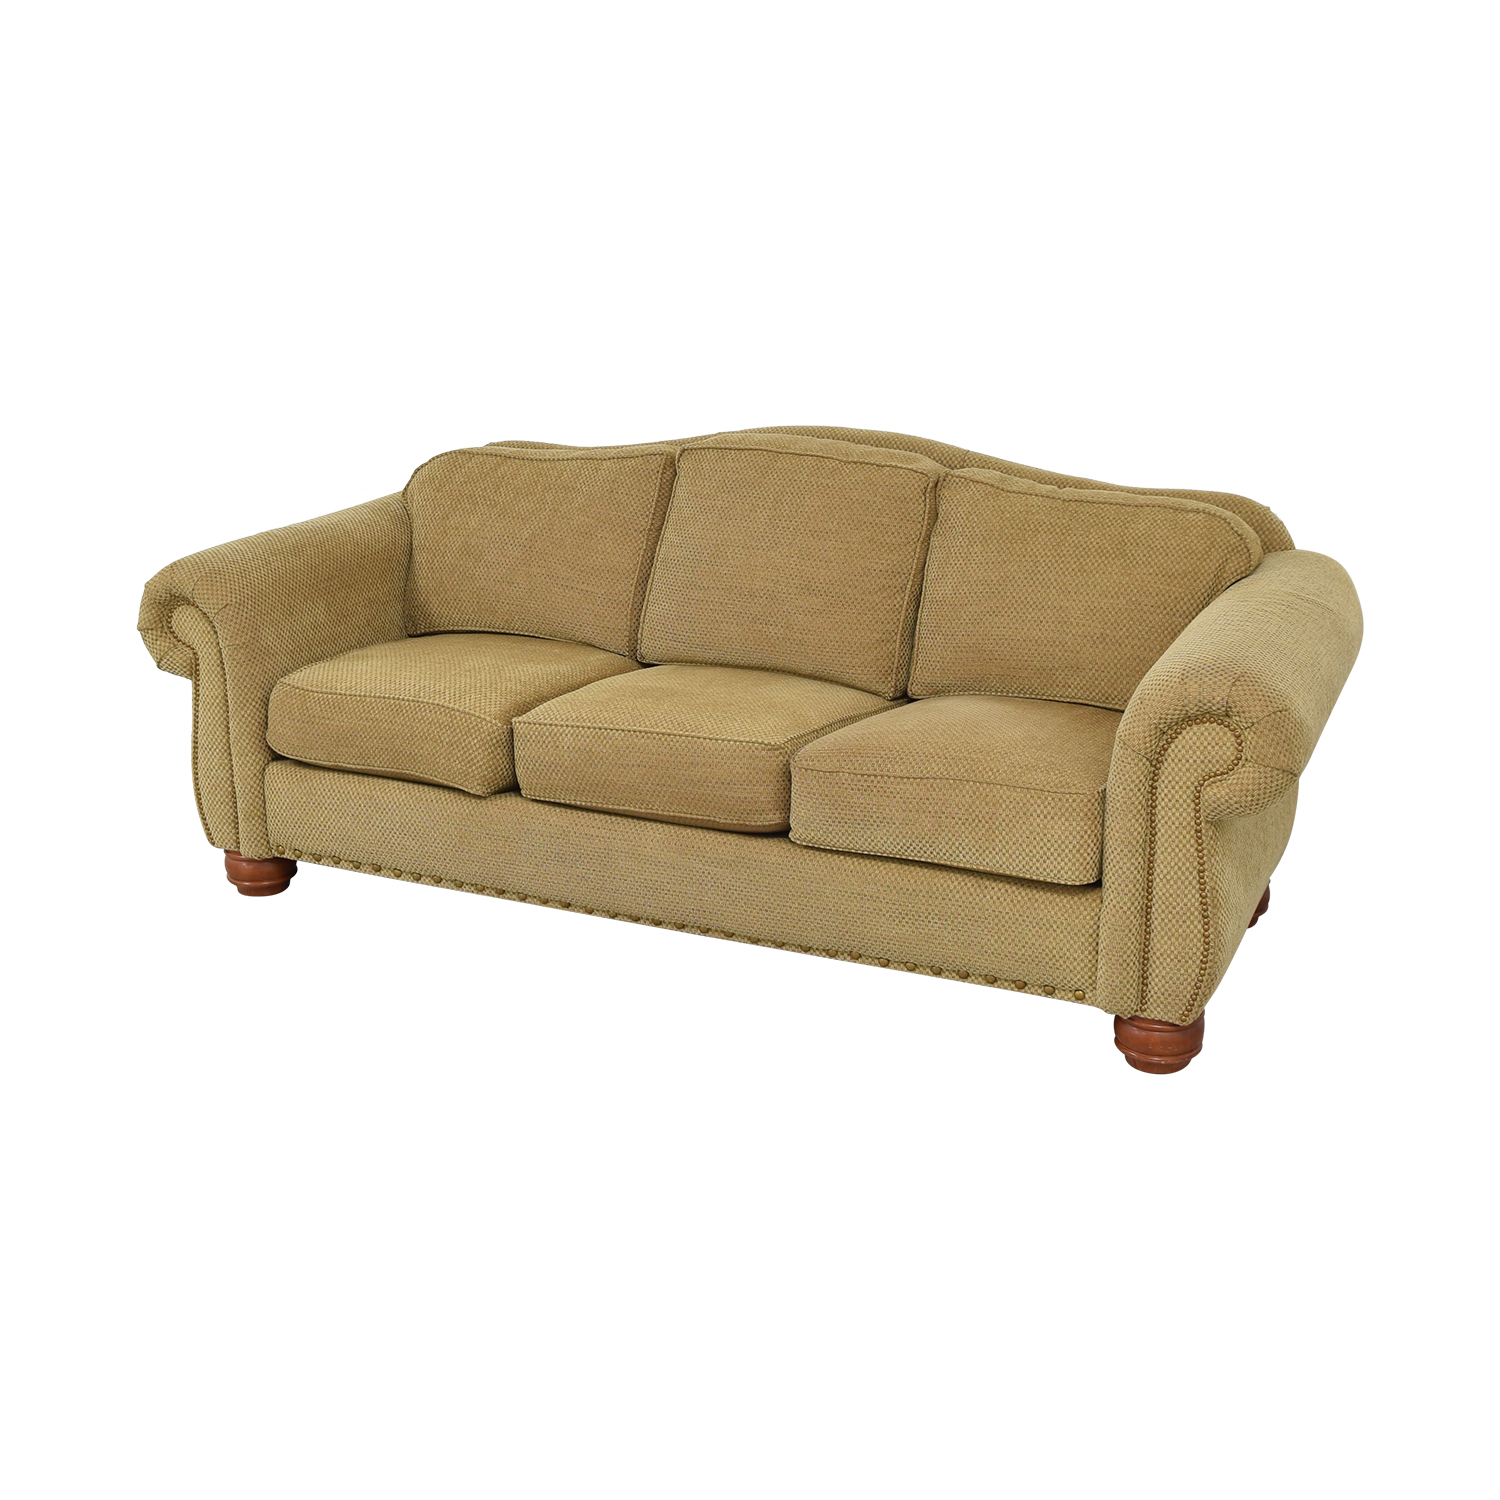 La-Z-Boy La-Z-Boy Three Cushion Sofa dimensions